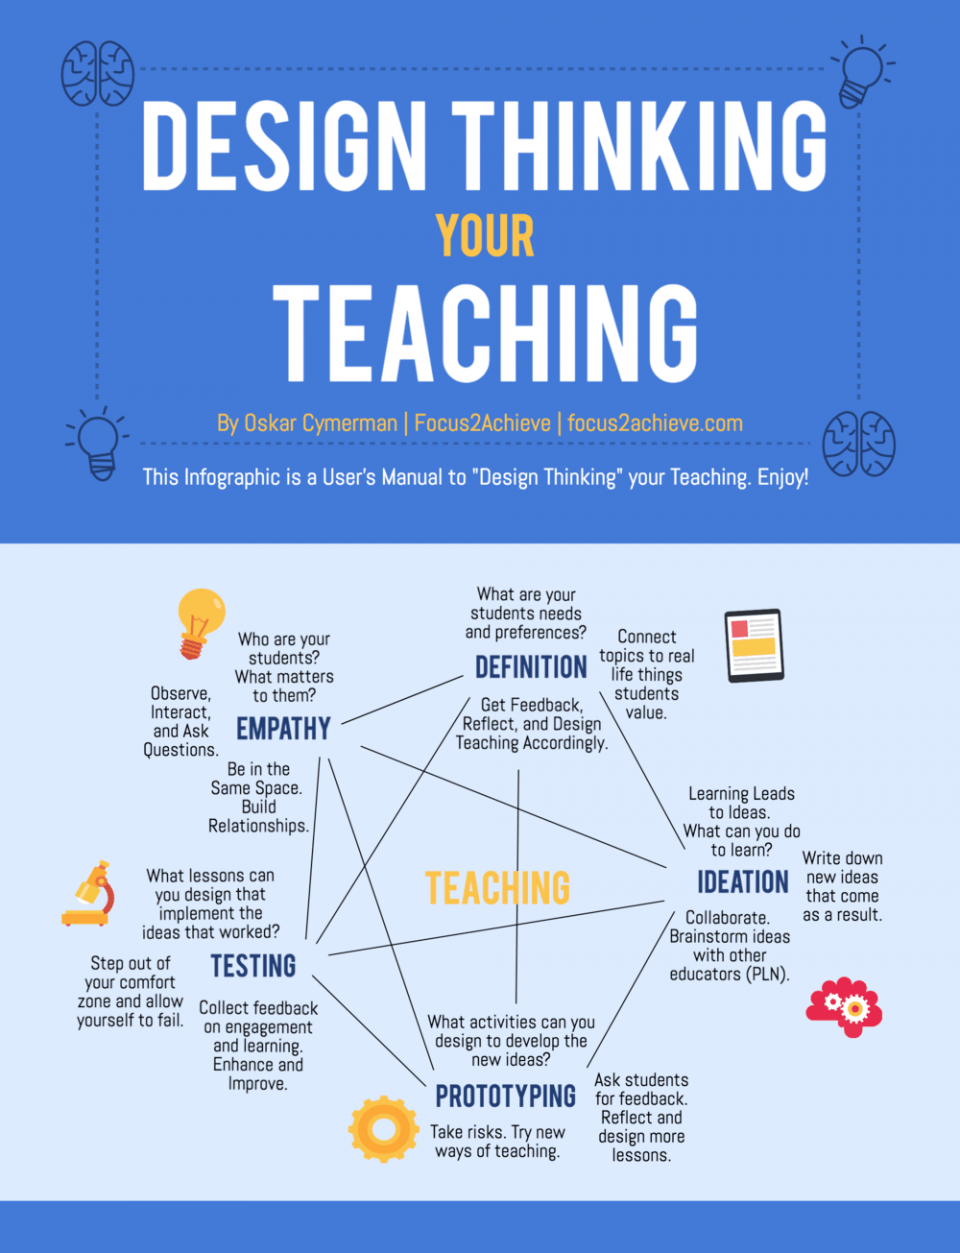 Design Thinking Your Teaching Infographic